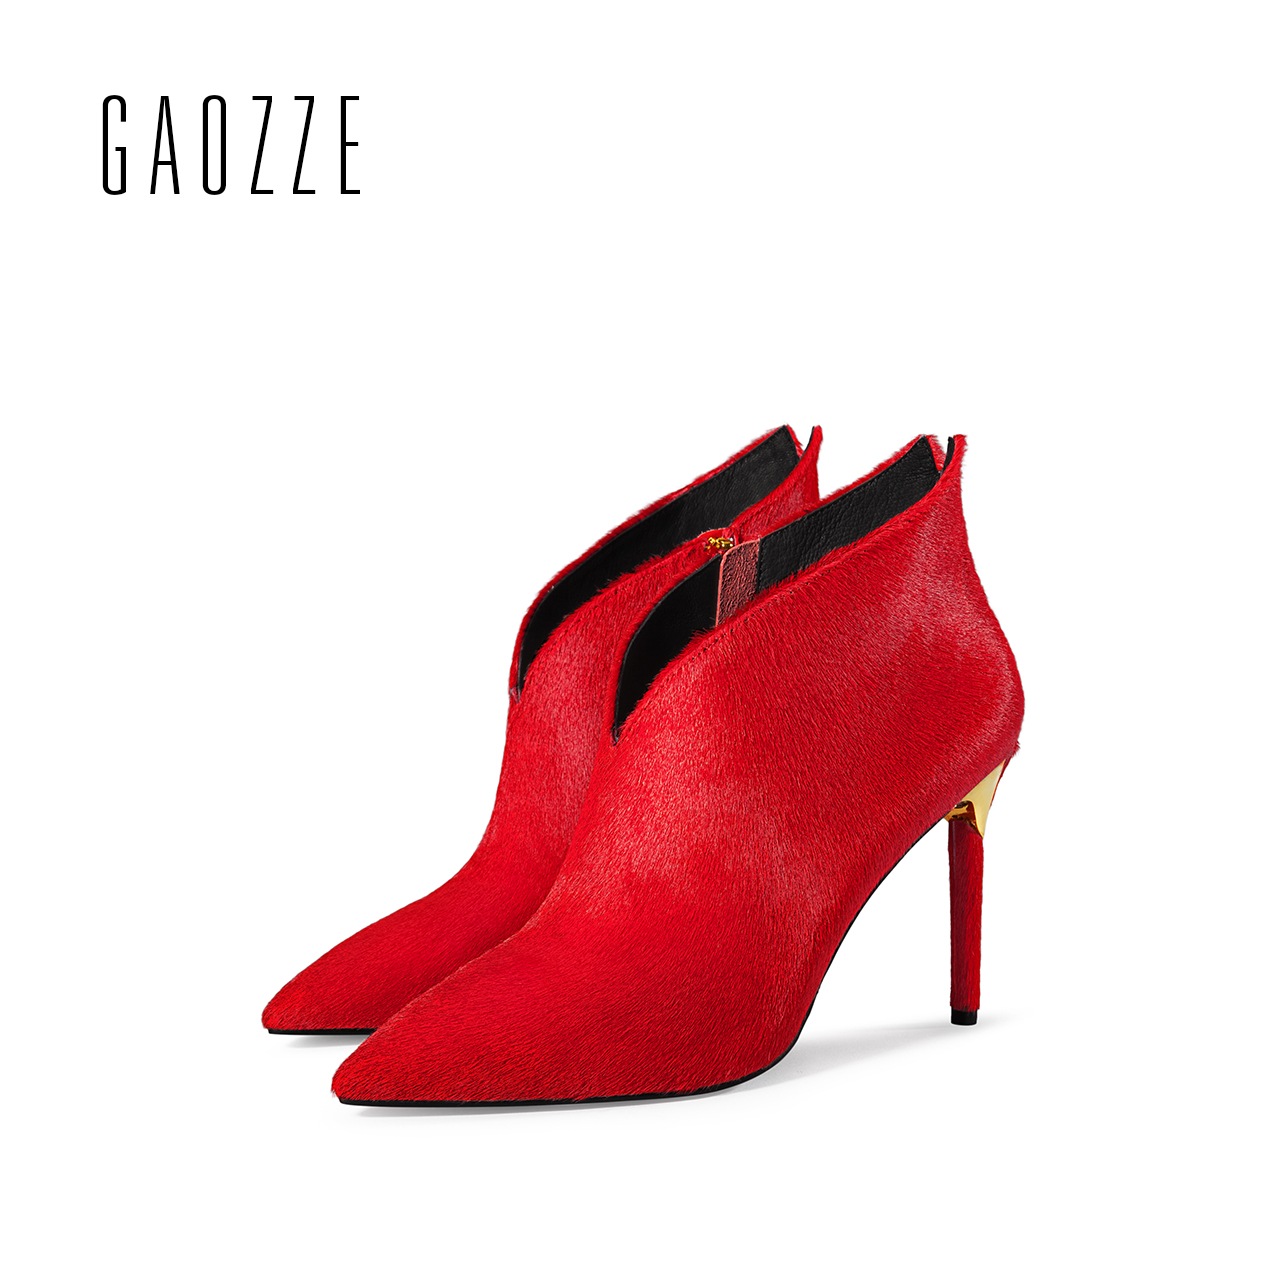 GAOZZE sexy high-heeled boots women fashion V-CUT ankle boots 2017 autumn winter new side zipper pointed red boots for women gaozze autumn ankle boots for women 2017 new sexy thin high heeled boots women side zipper fashion pointed toe shoes red boots